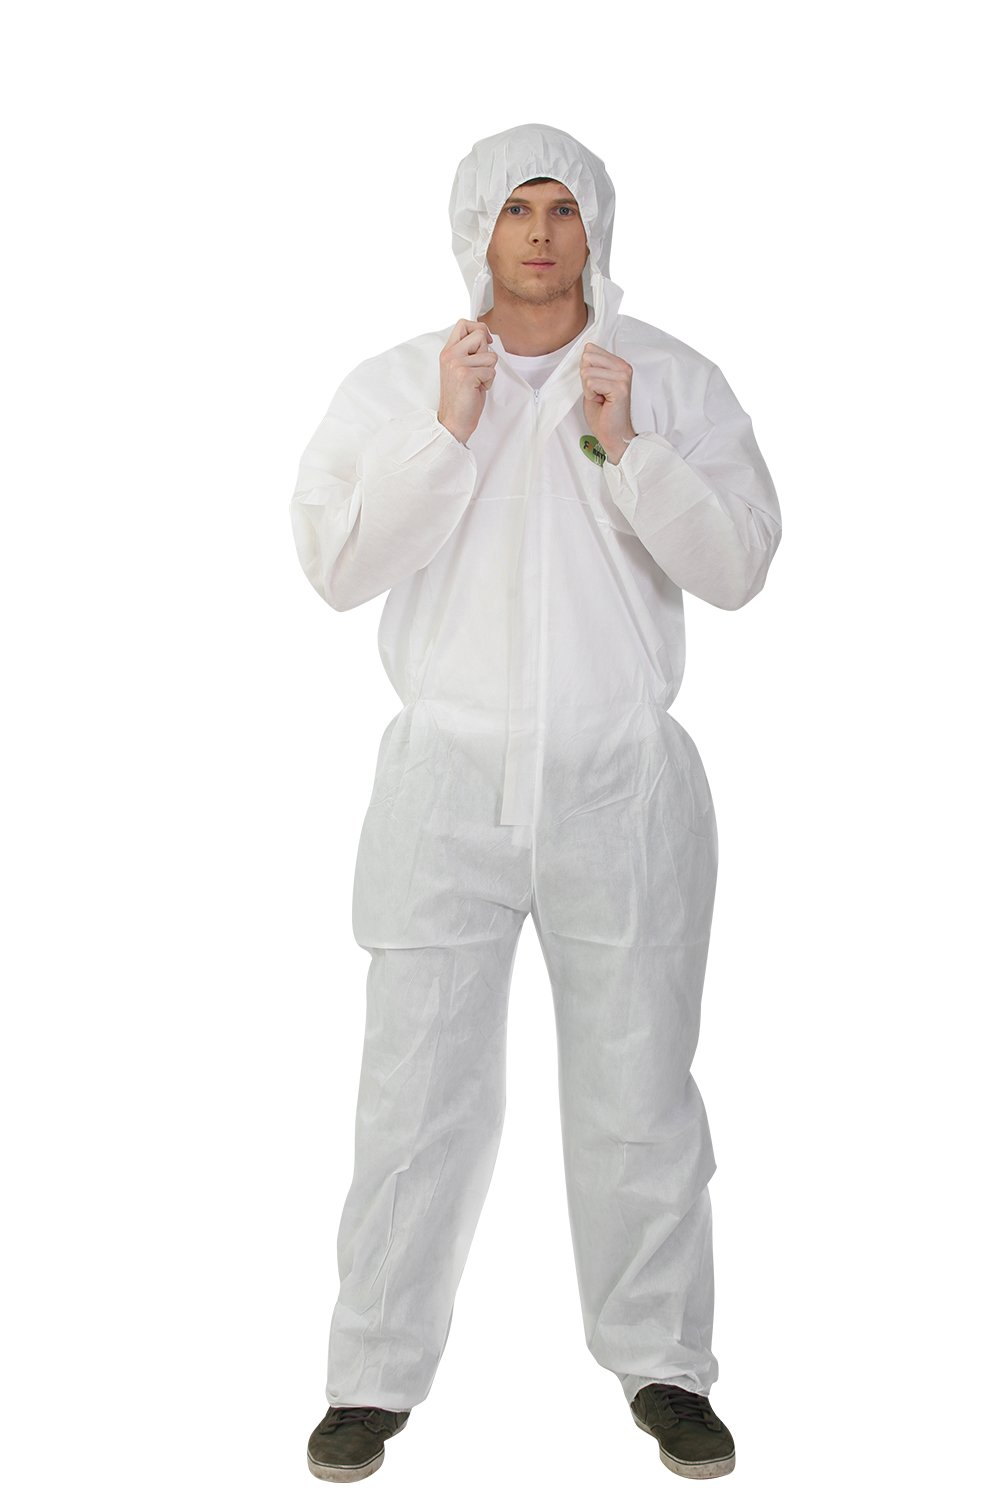 Raytex 5 Pack SMS Disposable Hooded White Coveralls Suit Chemical Protective Elastic Wrist Zipper Front Closure(2X-Large)